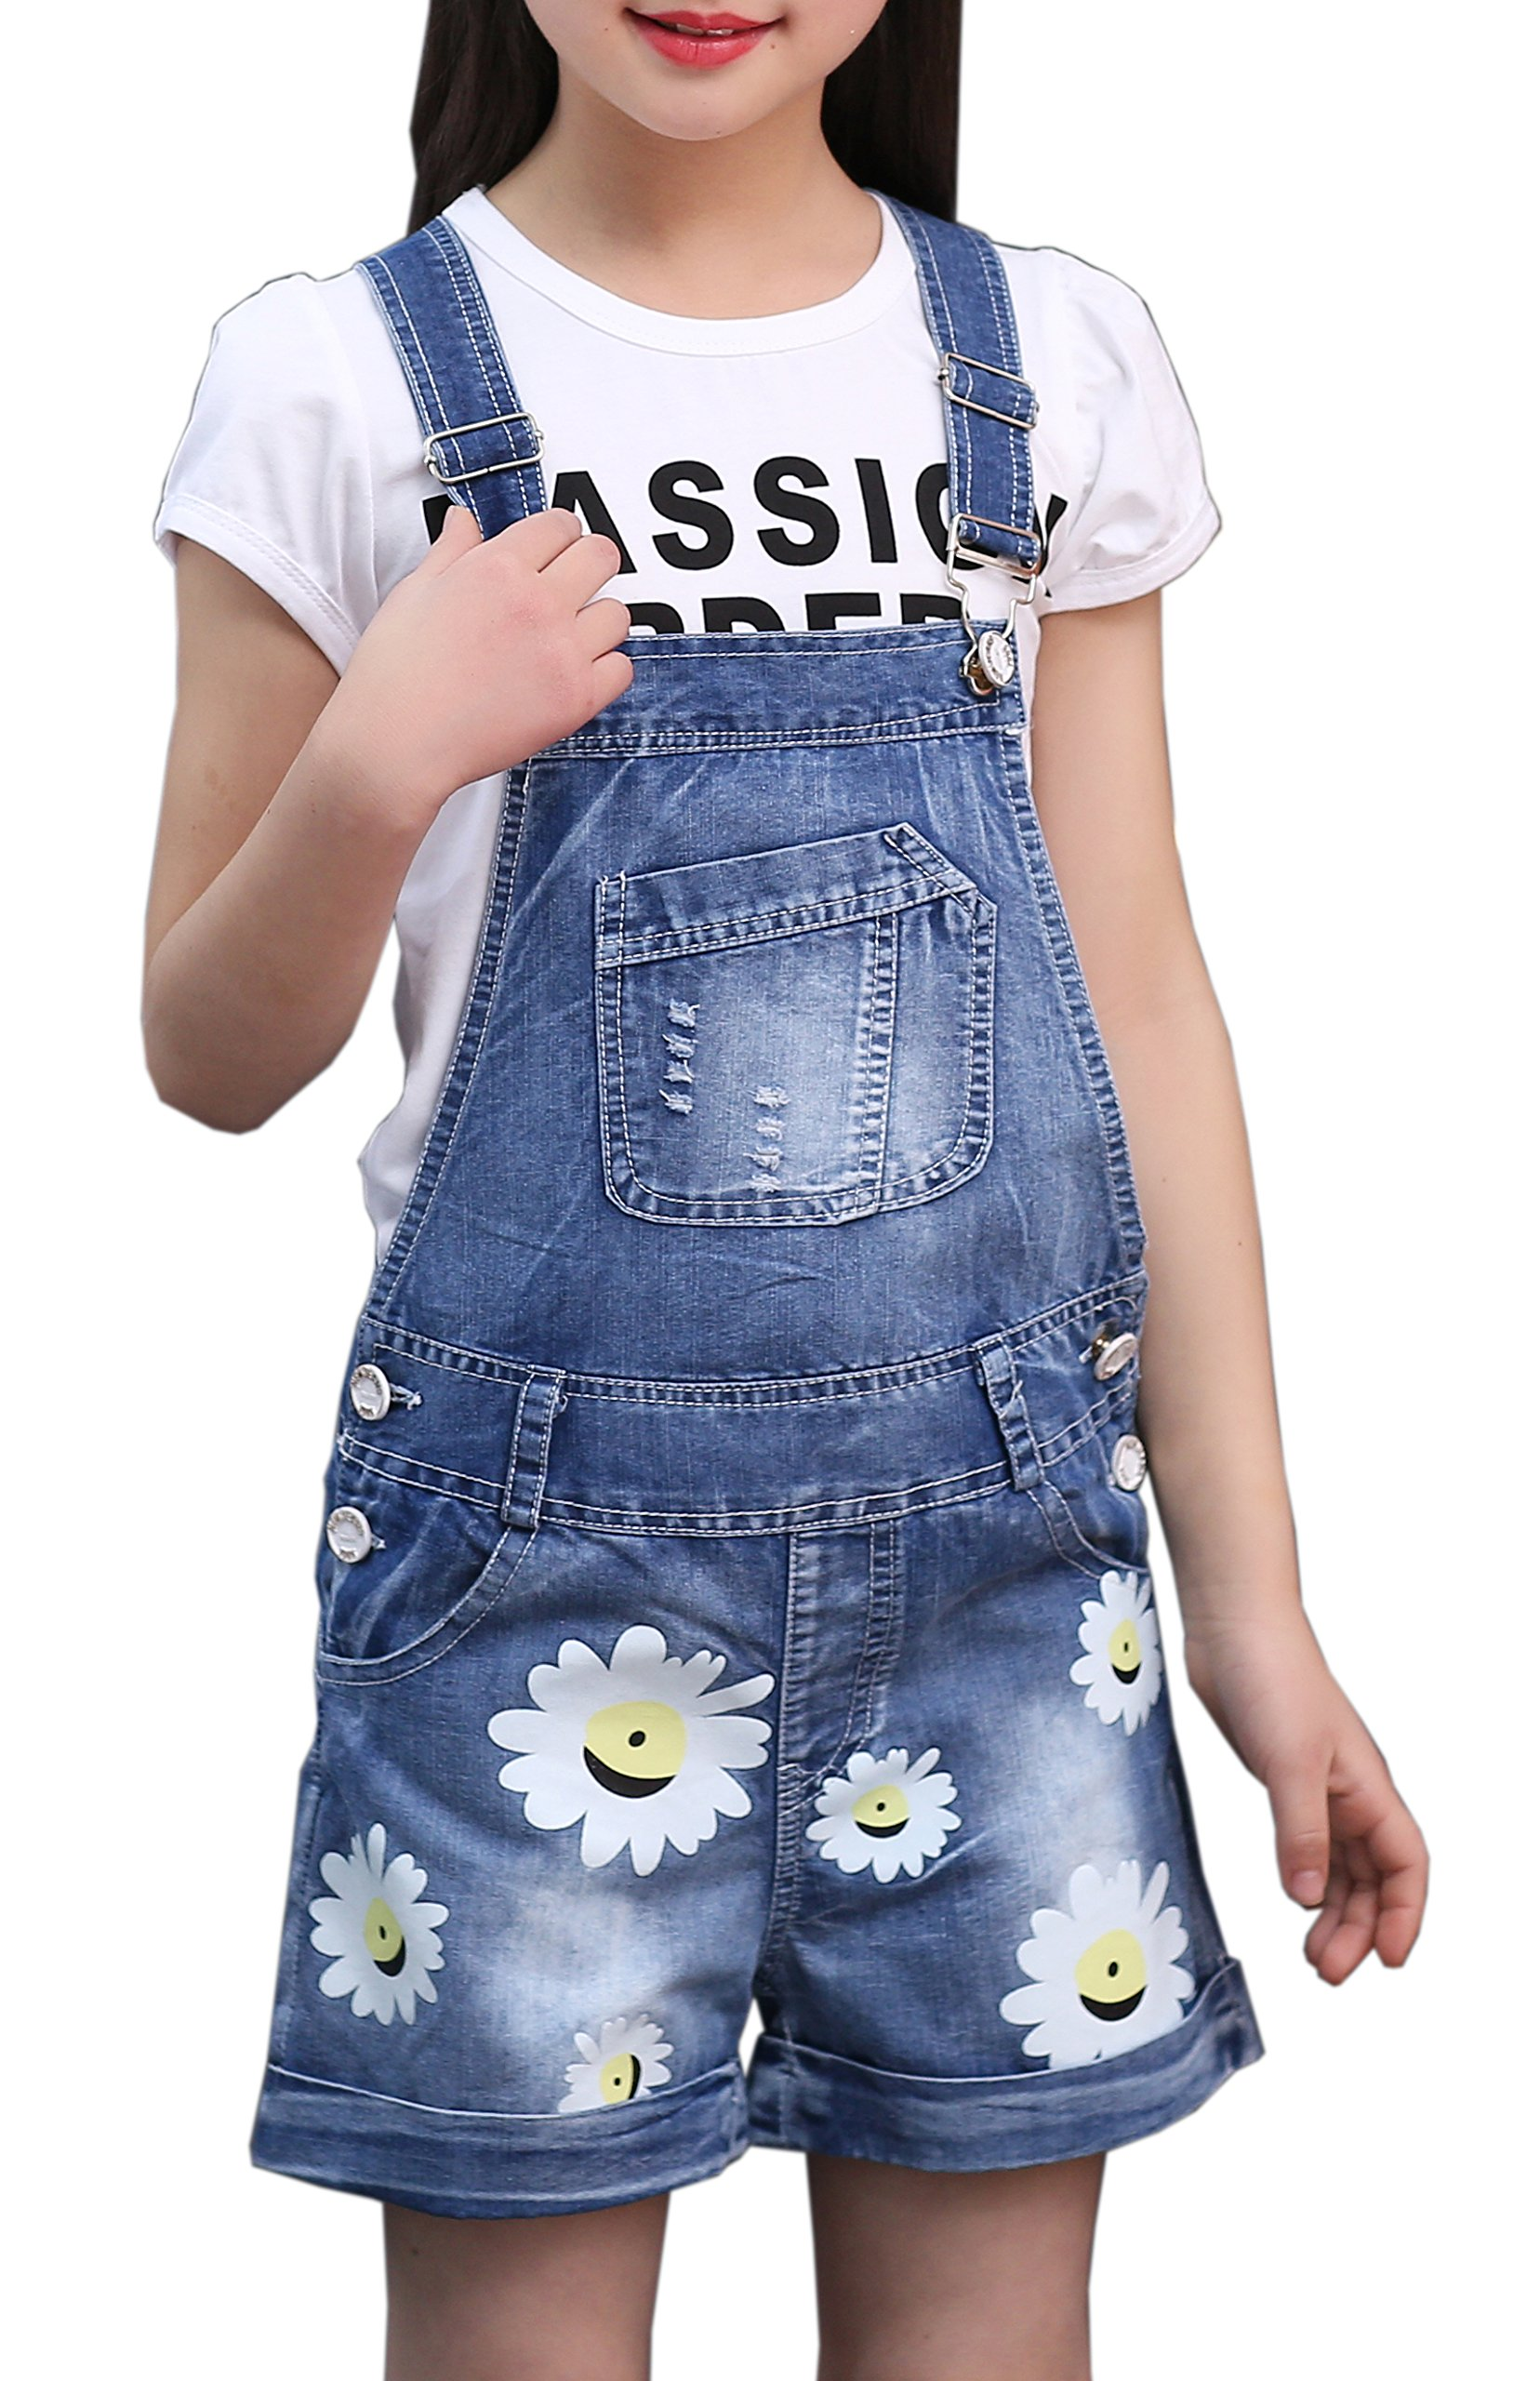 Sitmptol Kid Girls Sunny Flower Jumpsuit BF Jeans Distressed Shorts Overalls with T-Shirt